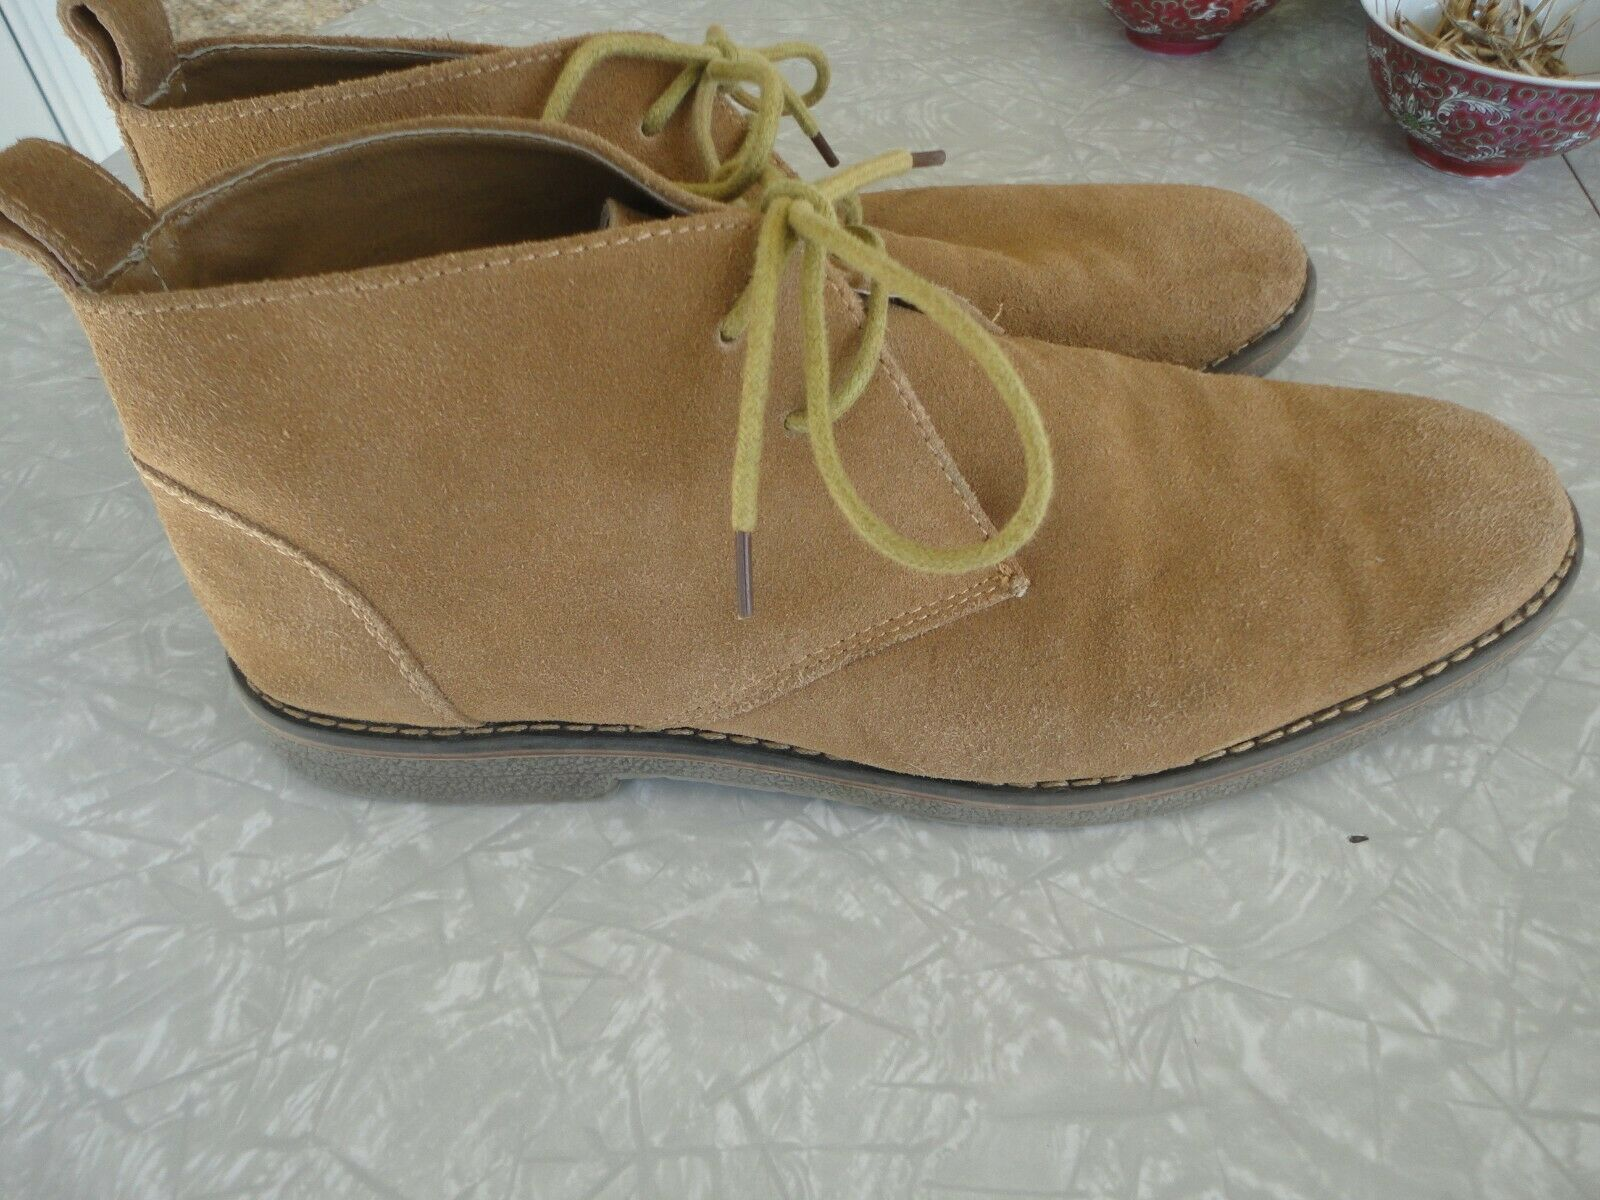 G. H. BASS & CO PLANO TP MEN'S TAUPE TAN SUEDE LEATHER 4 CHUKKA BOOTS SIZE 11 D